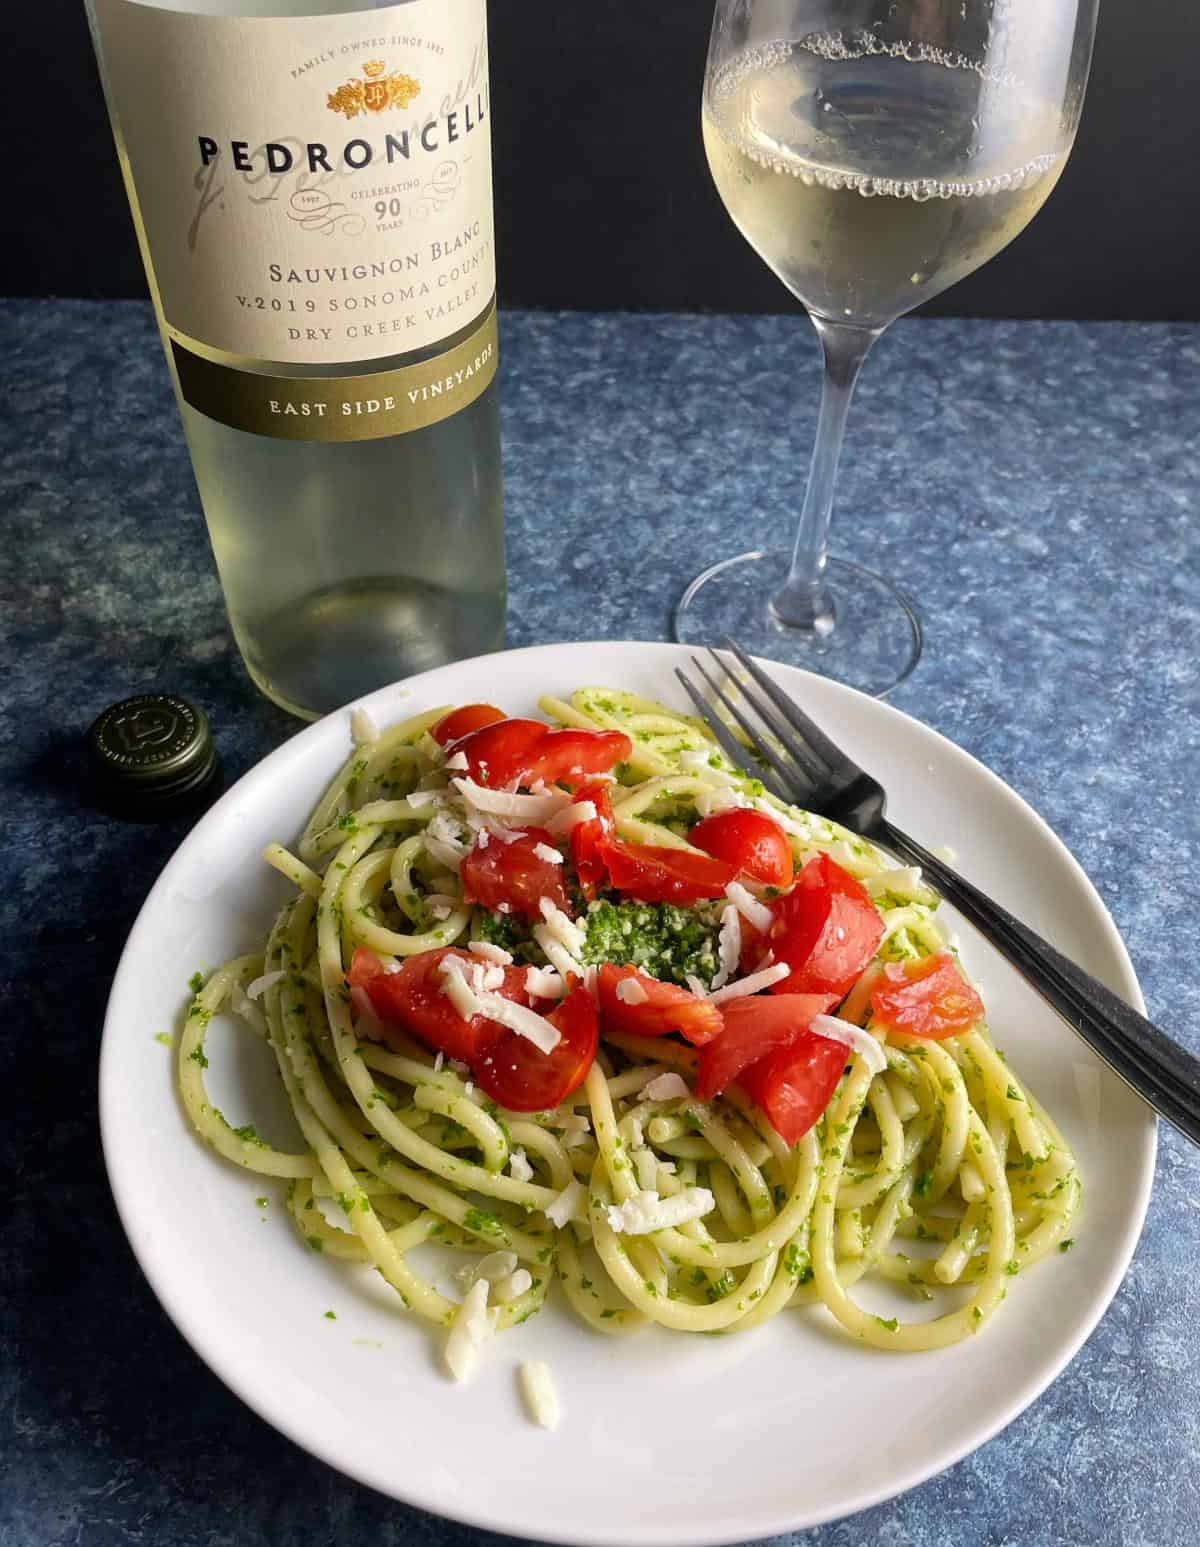 bucatini tossed with kale pesto and topped with fresh tomatoes. Served with a Sauvignon Blanc white wine.